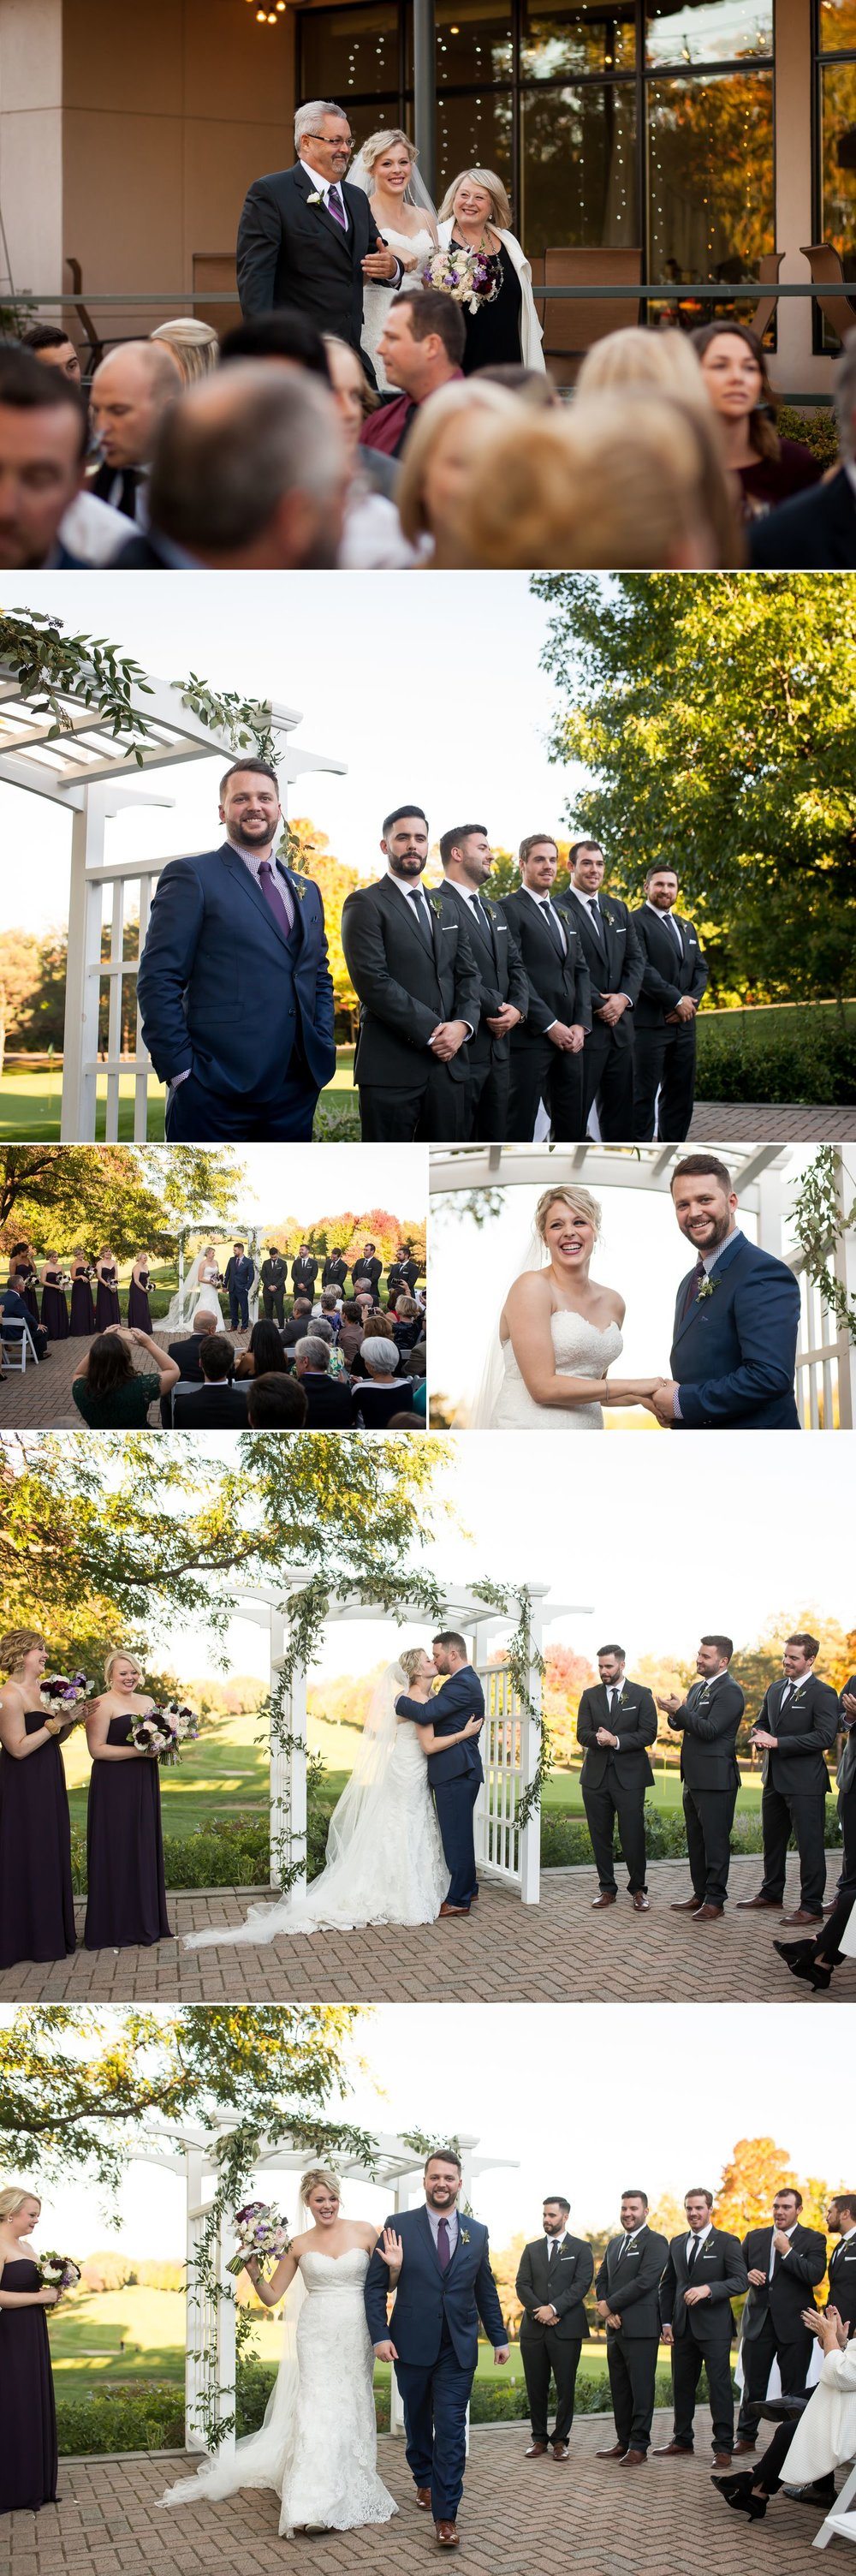 An outdoor wedding ceremony at Rideau View Golf Club